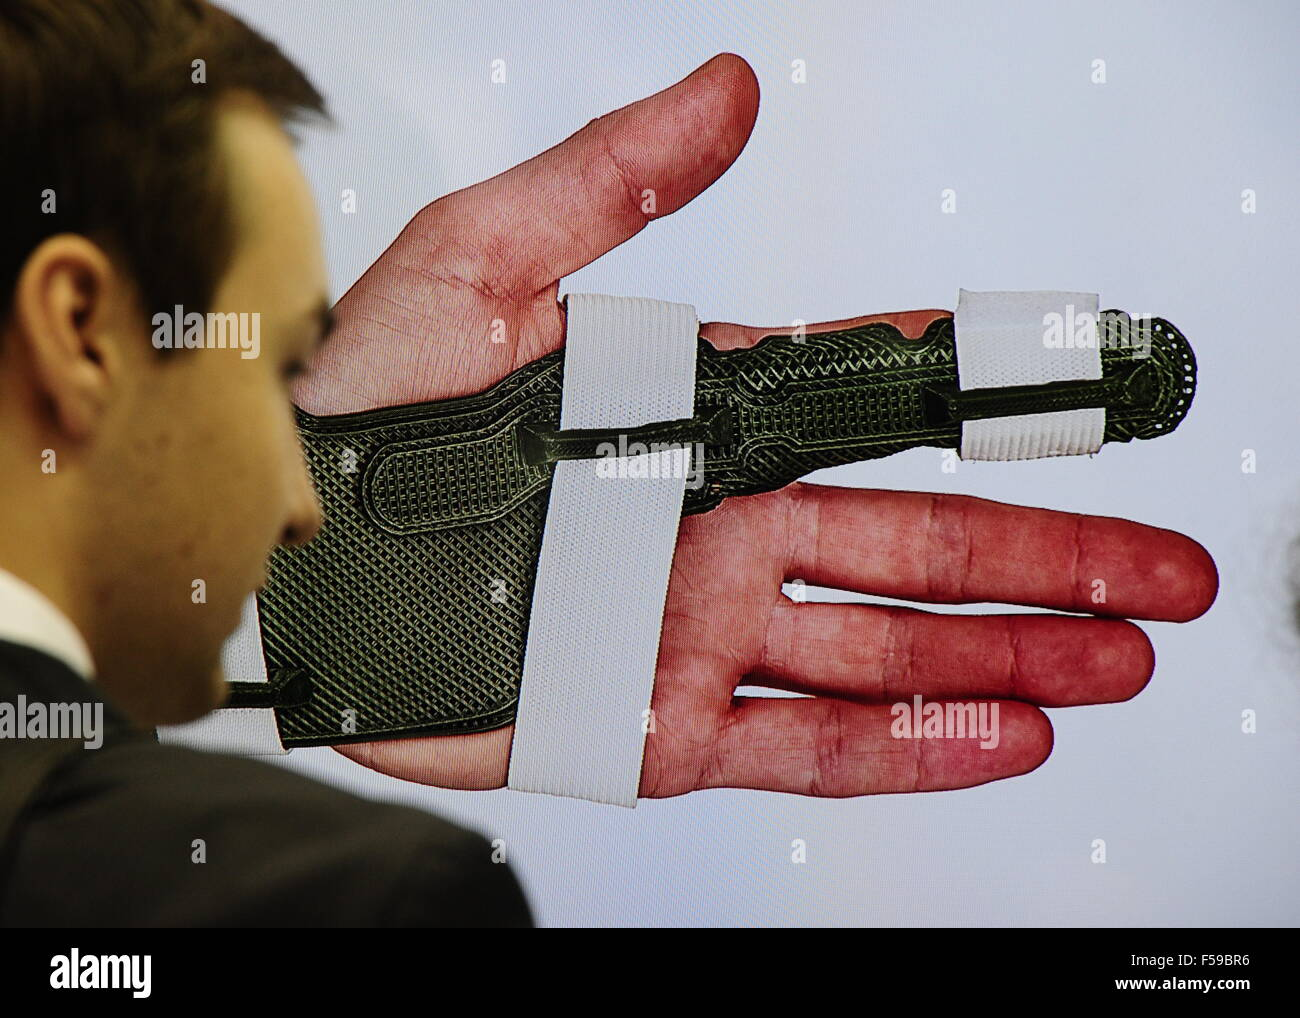 Moscow, Russia. 30th Oct, 2015. A picture of a hand orthosis on display at the Fasie stand at the 2015 Open Innovations - Stock Image